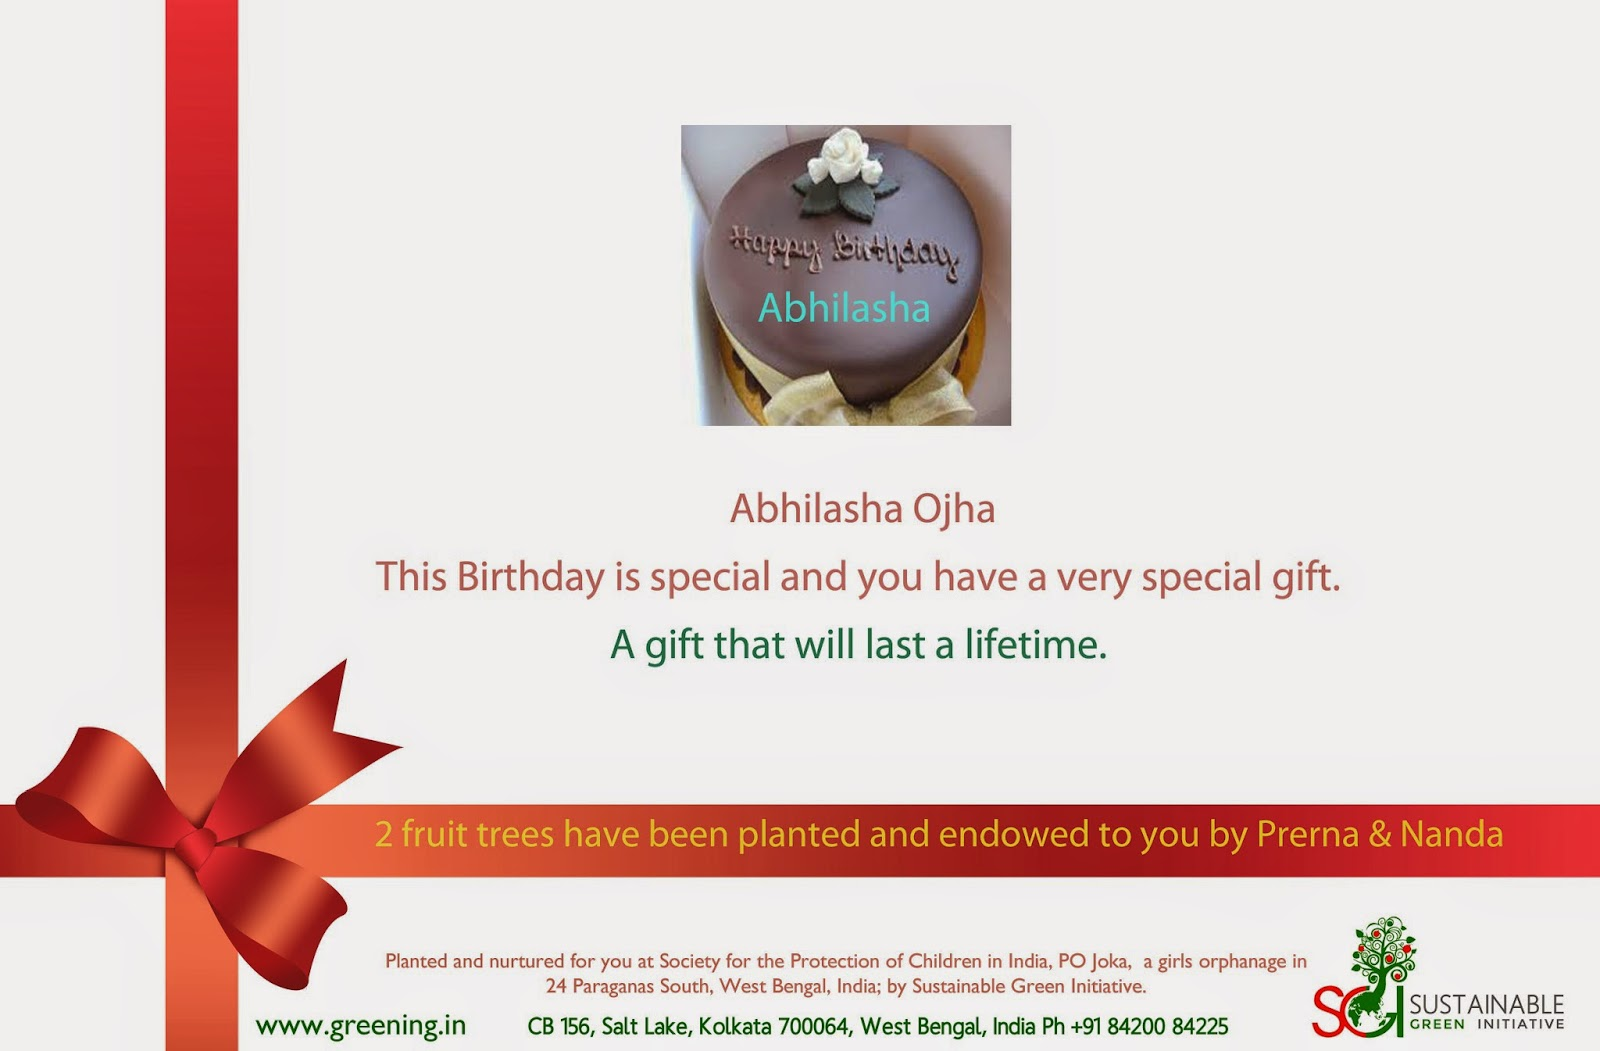 Special birthday gifts for women, plant and gift trees, they last a lifetime